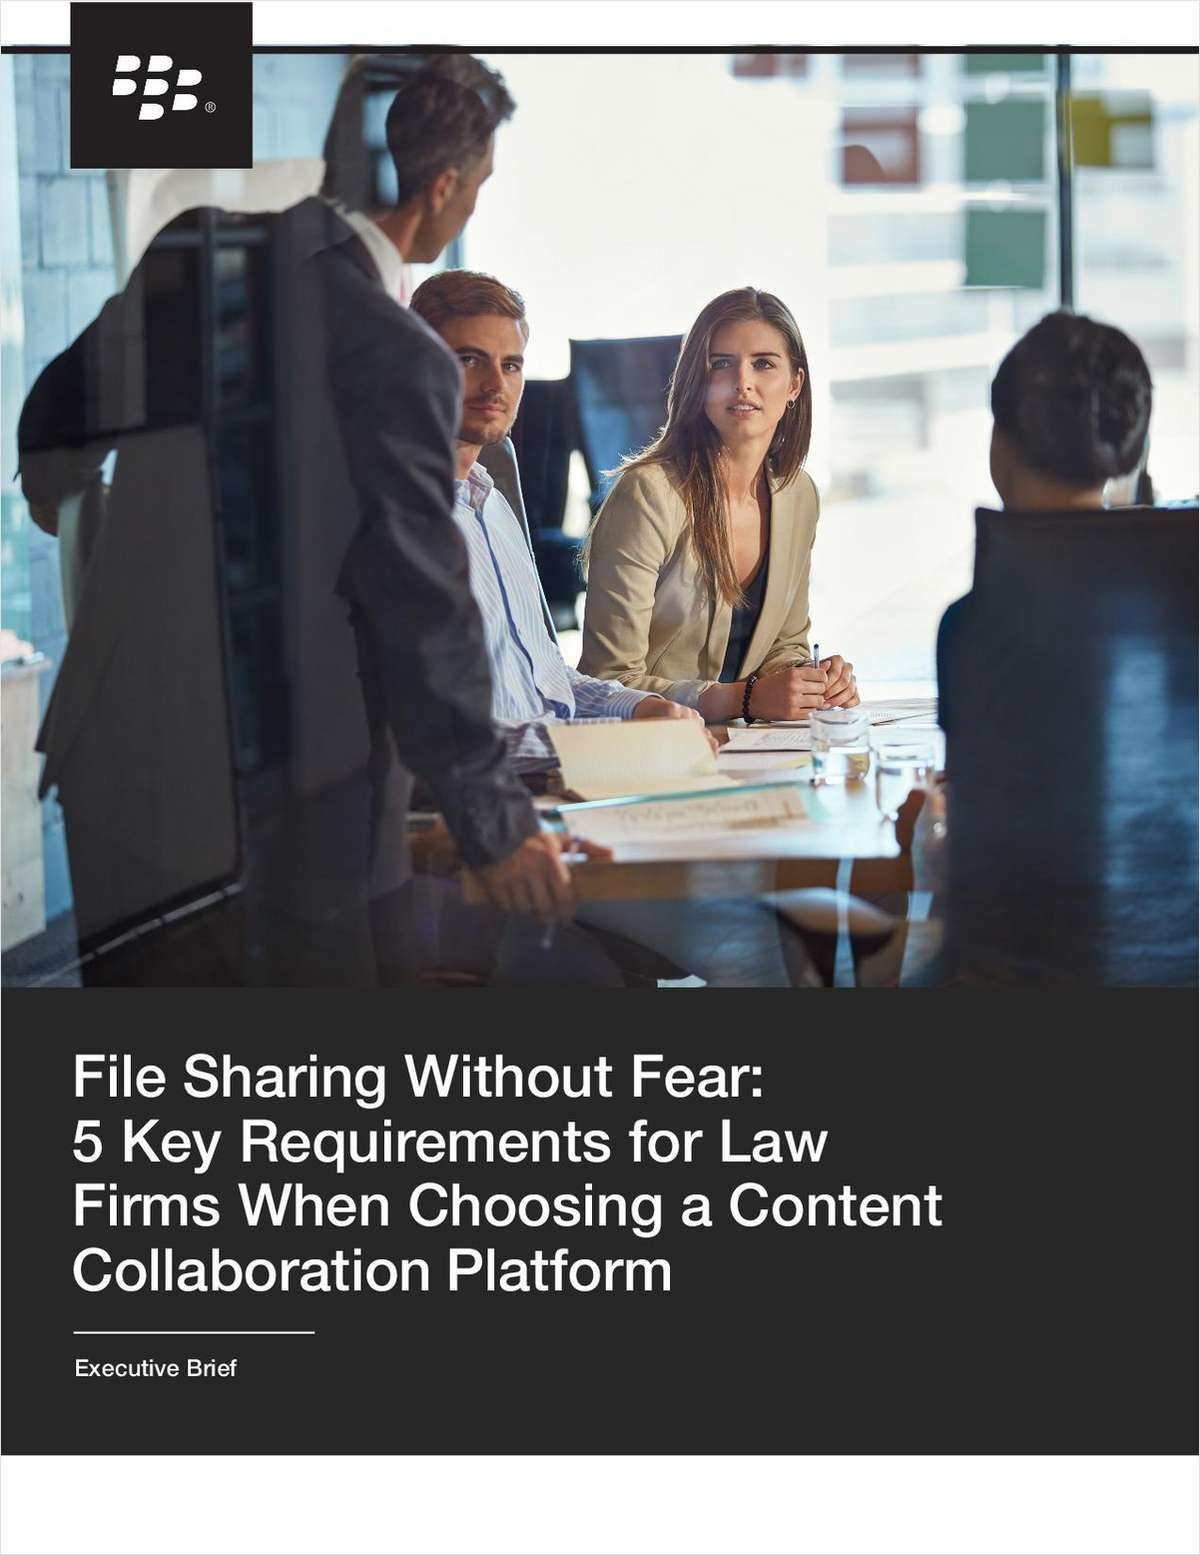 Five Non-Negotiable Requirements for Law Firm Content Collaboration Platforms